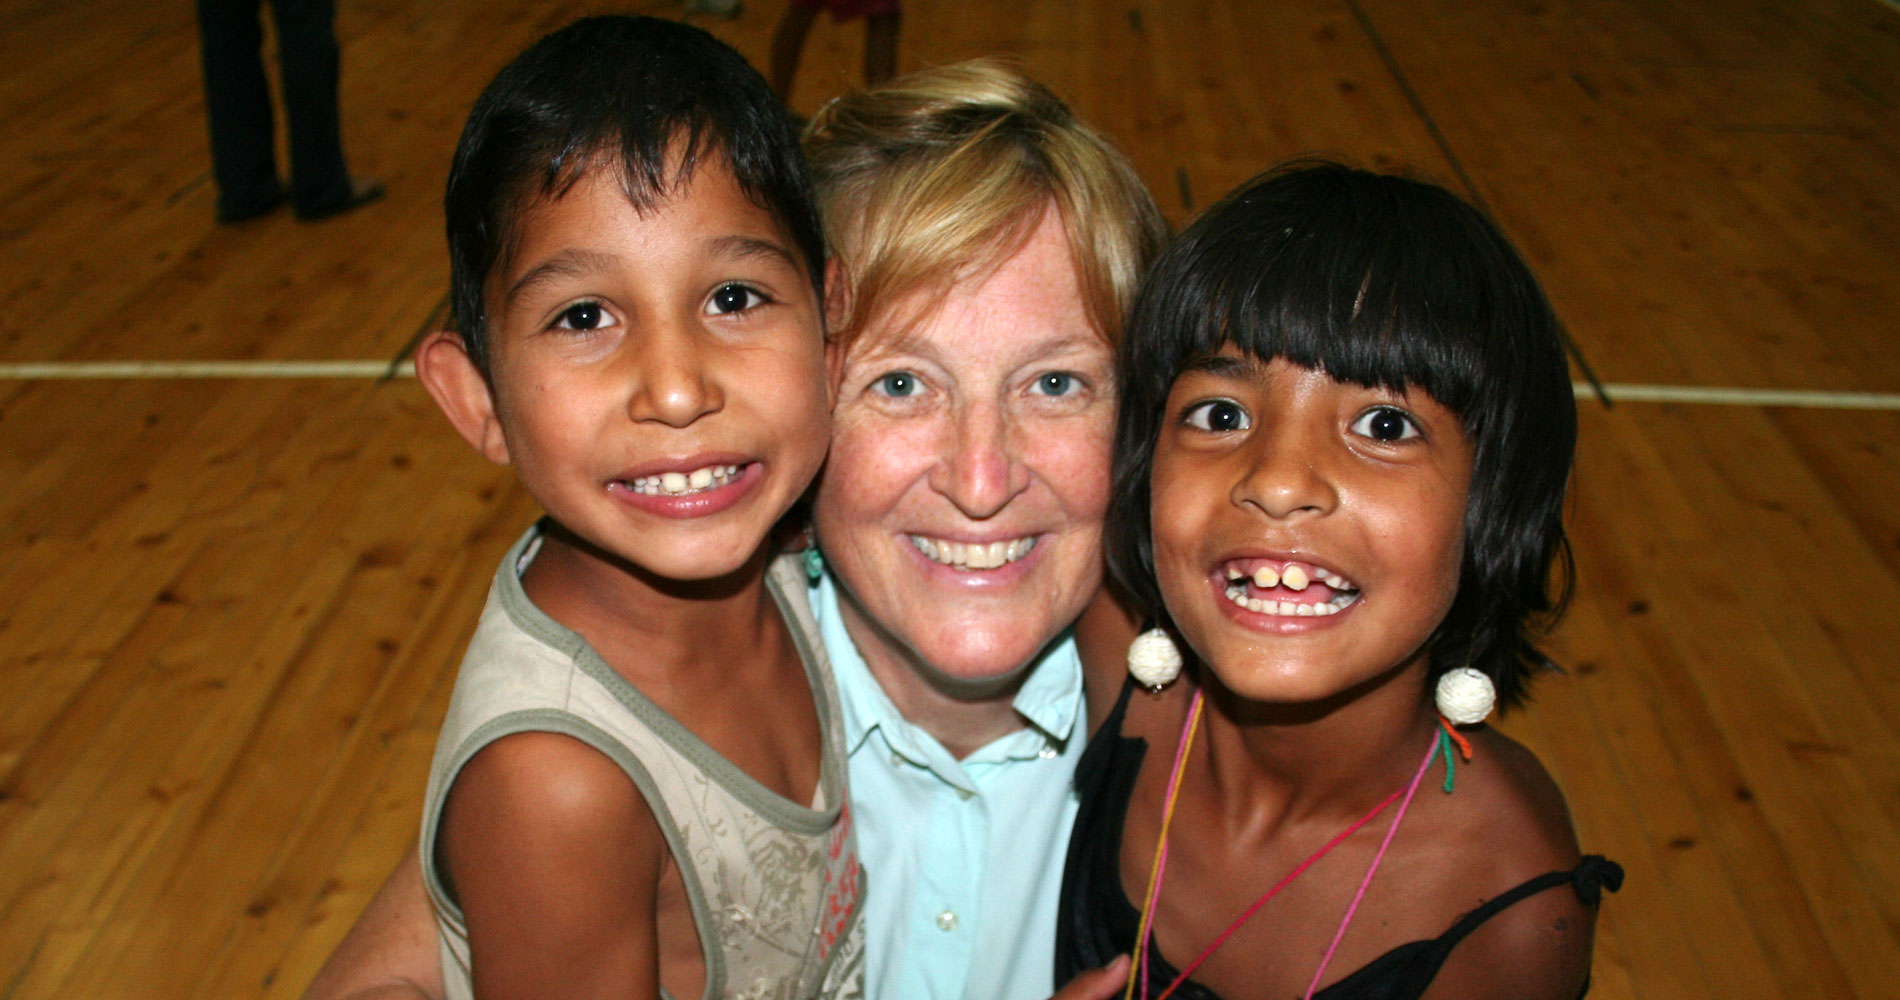 becky with kids from tran